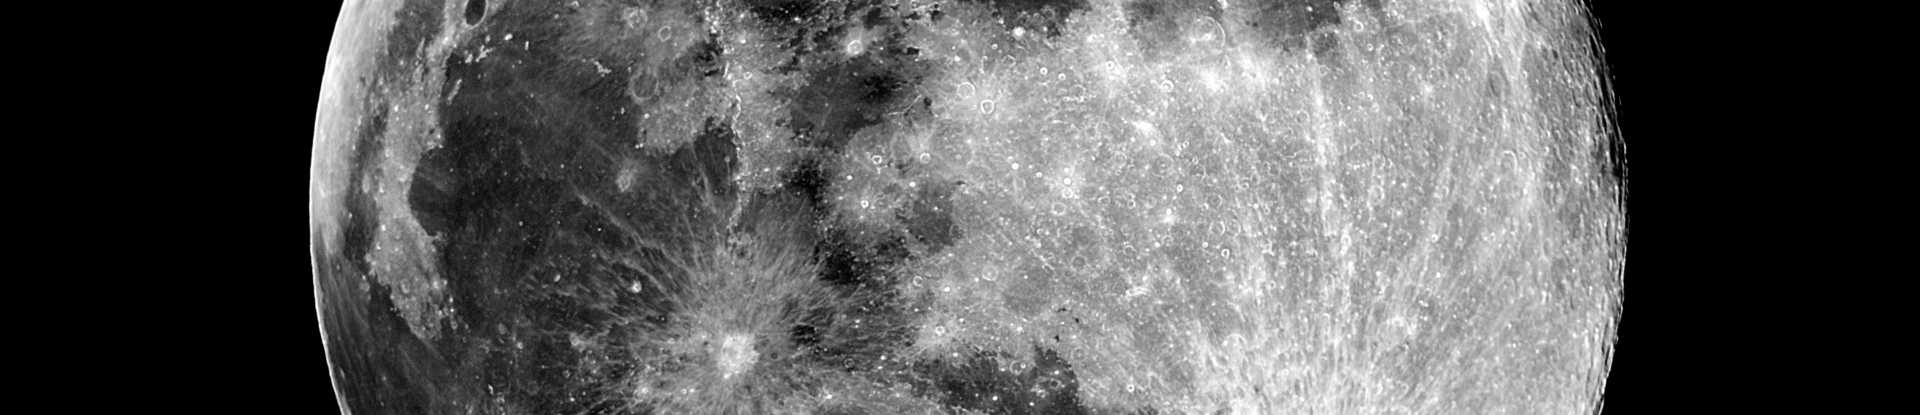 Press Release-SwRI to adapt mass spectrometer for lunar missions